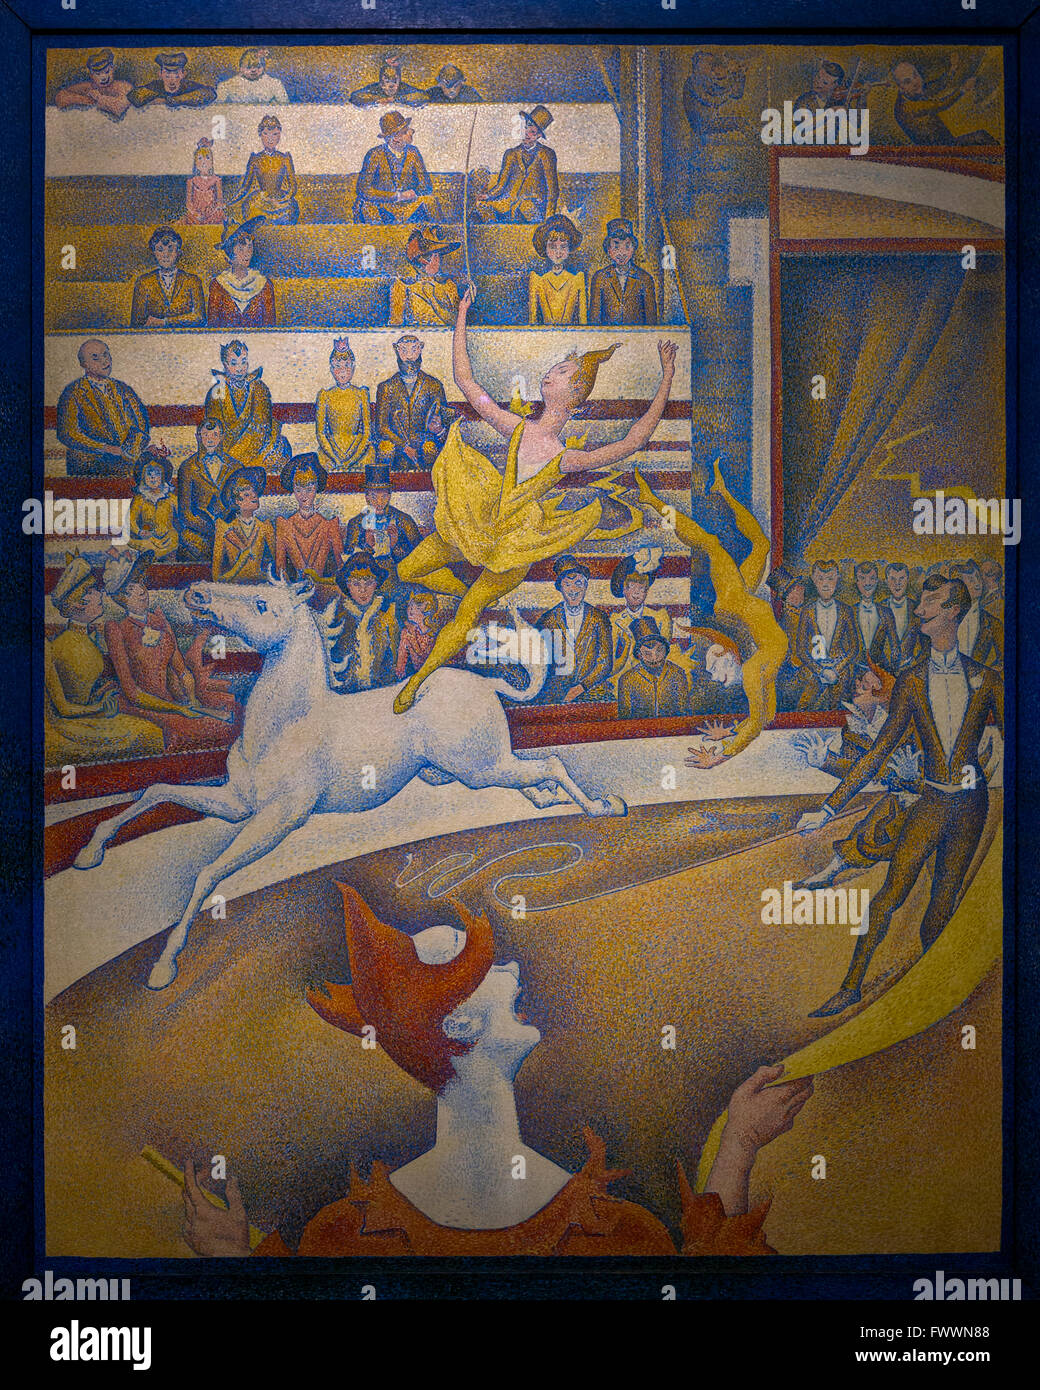 The Circus Cirque By Georges Seurat Musee D Orsay